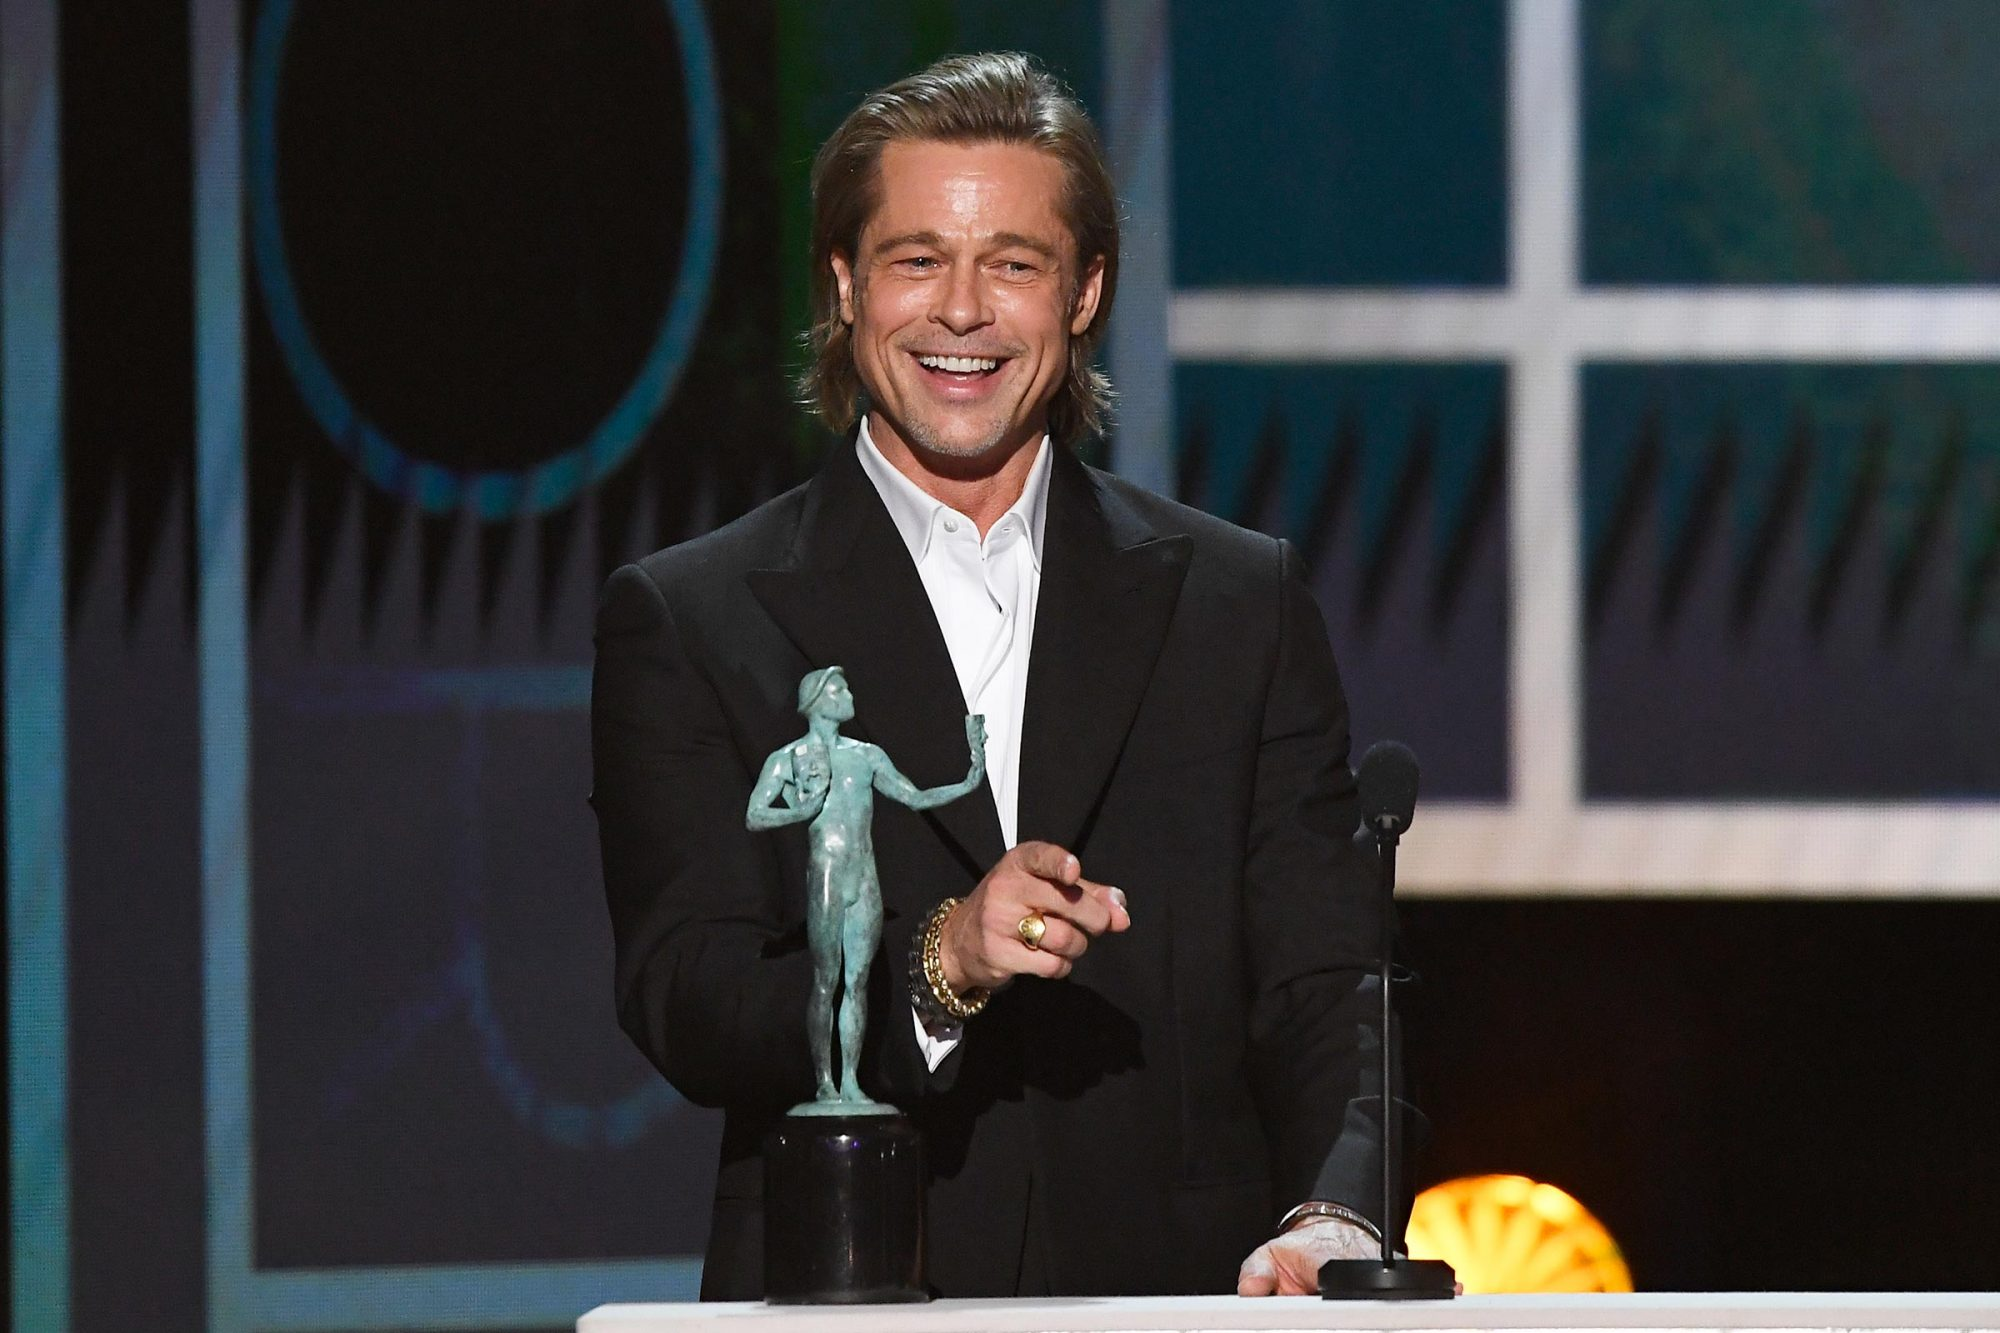 Brad Pitt — Best Supporting Actor in a Motion Picture